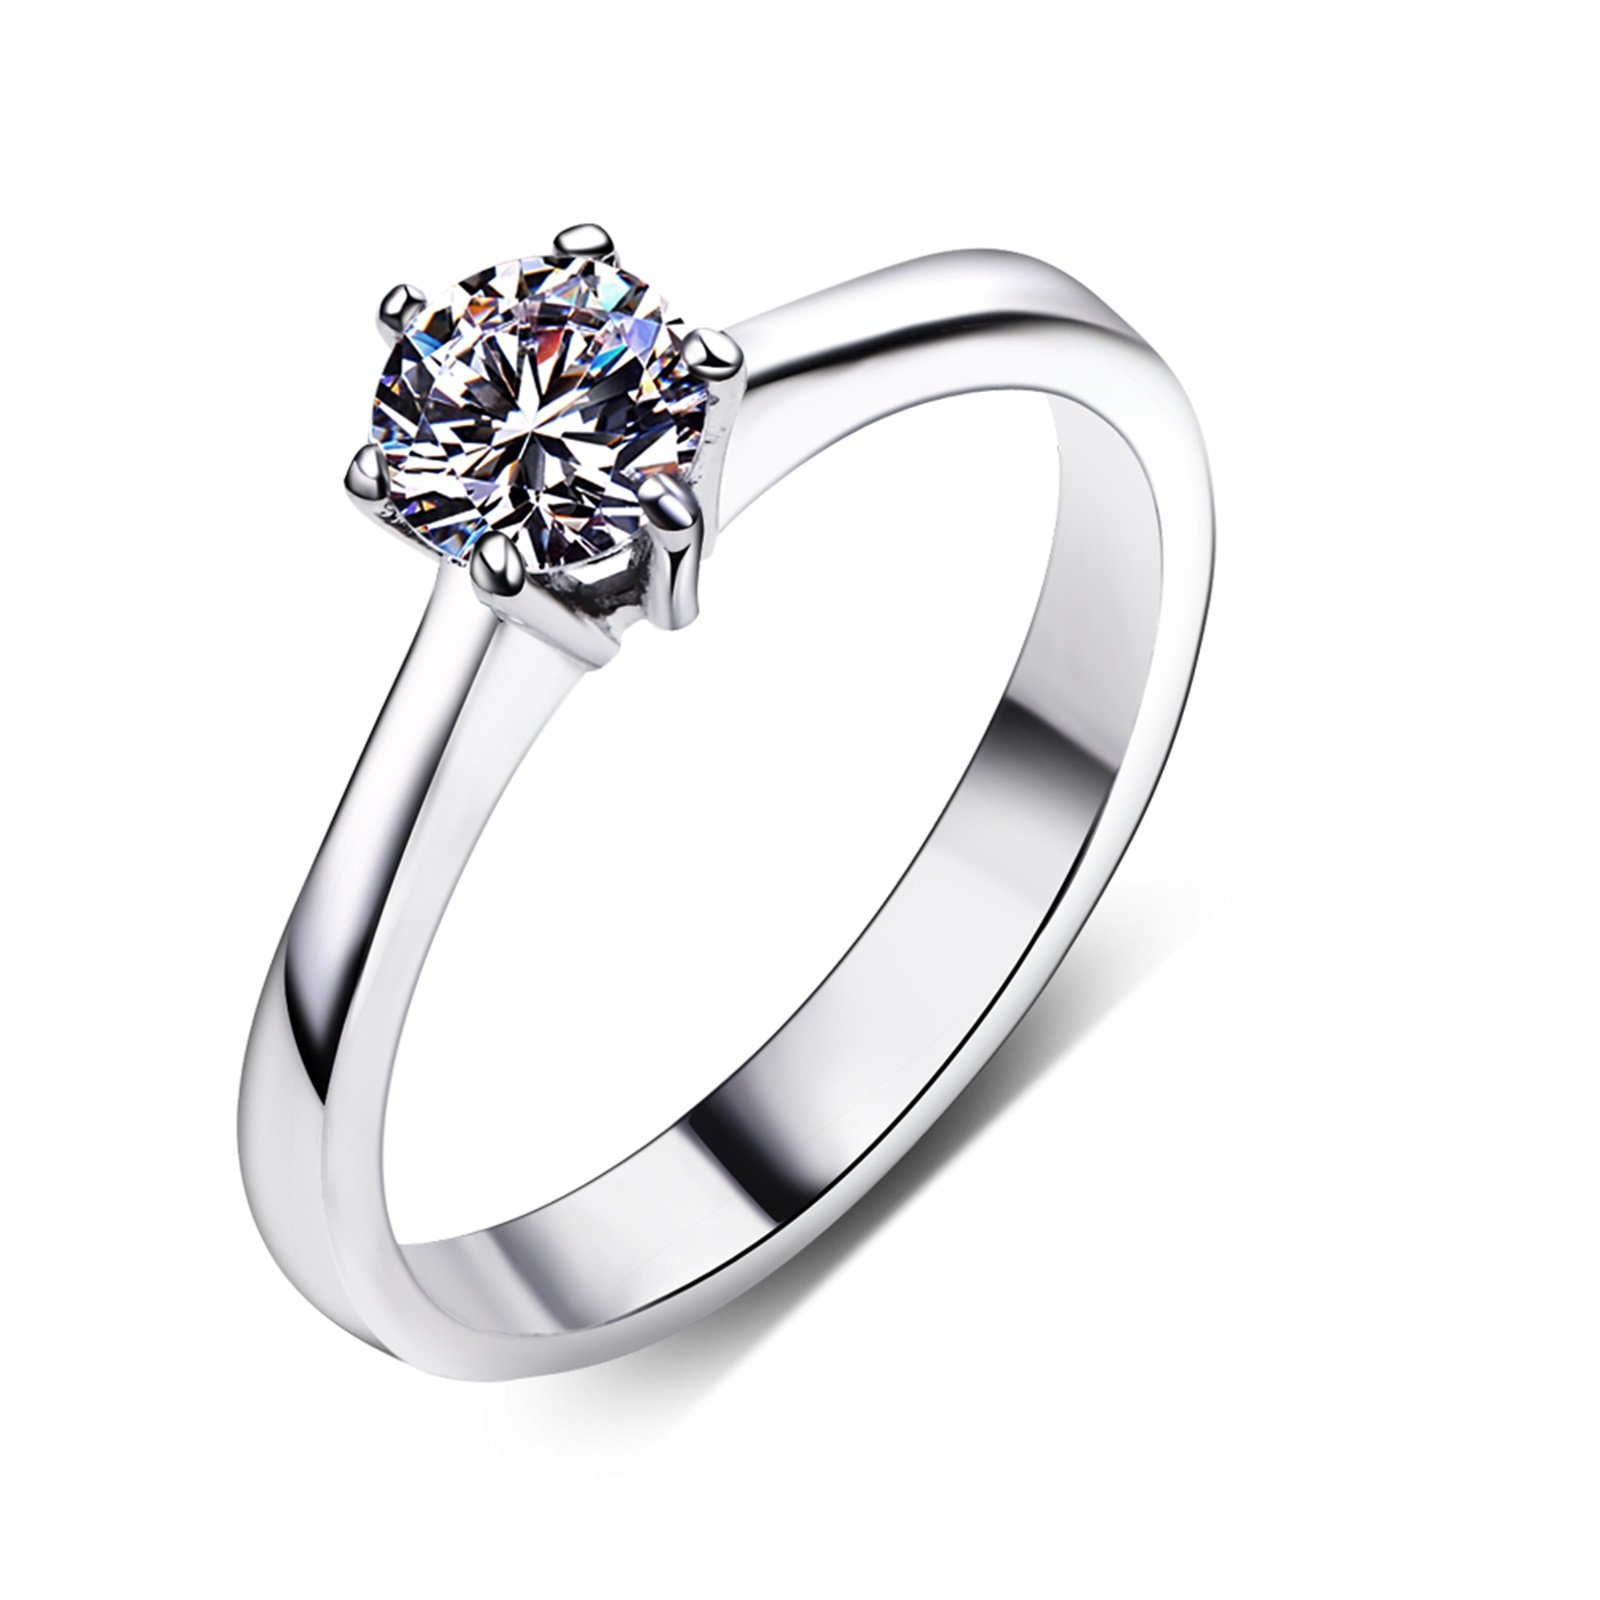 Beydodo Silver Plated Wedding Rings for Women Size 7 Solitaire Ring 6-prong Setting Round Cut Crystal